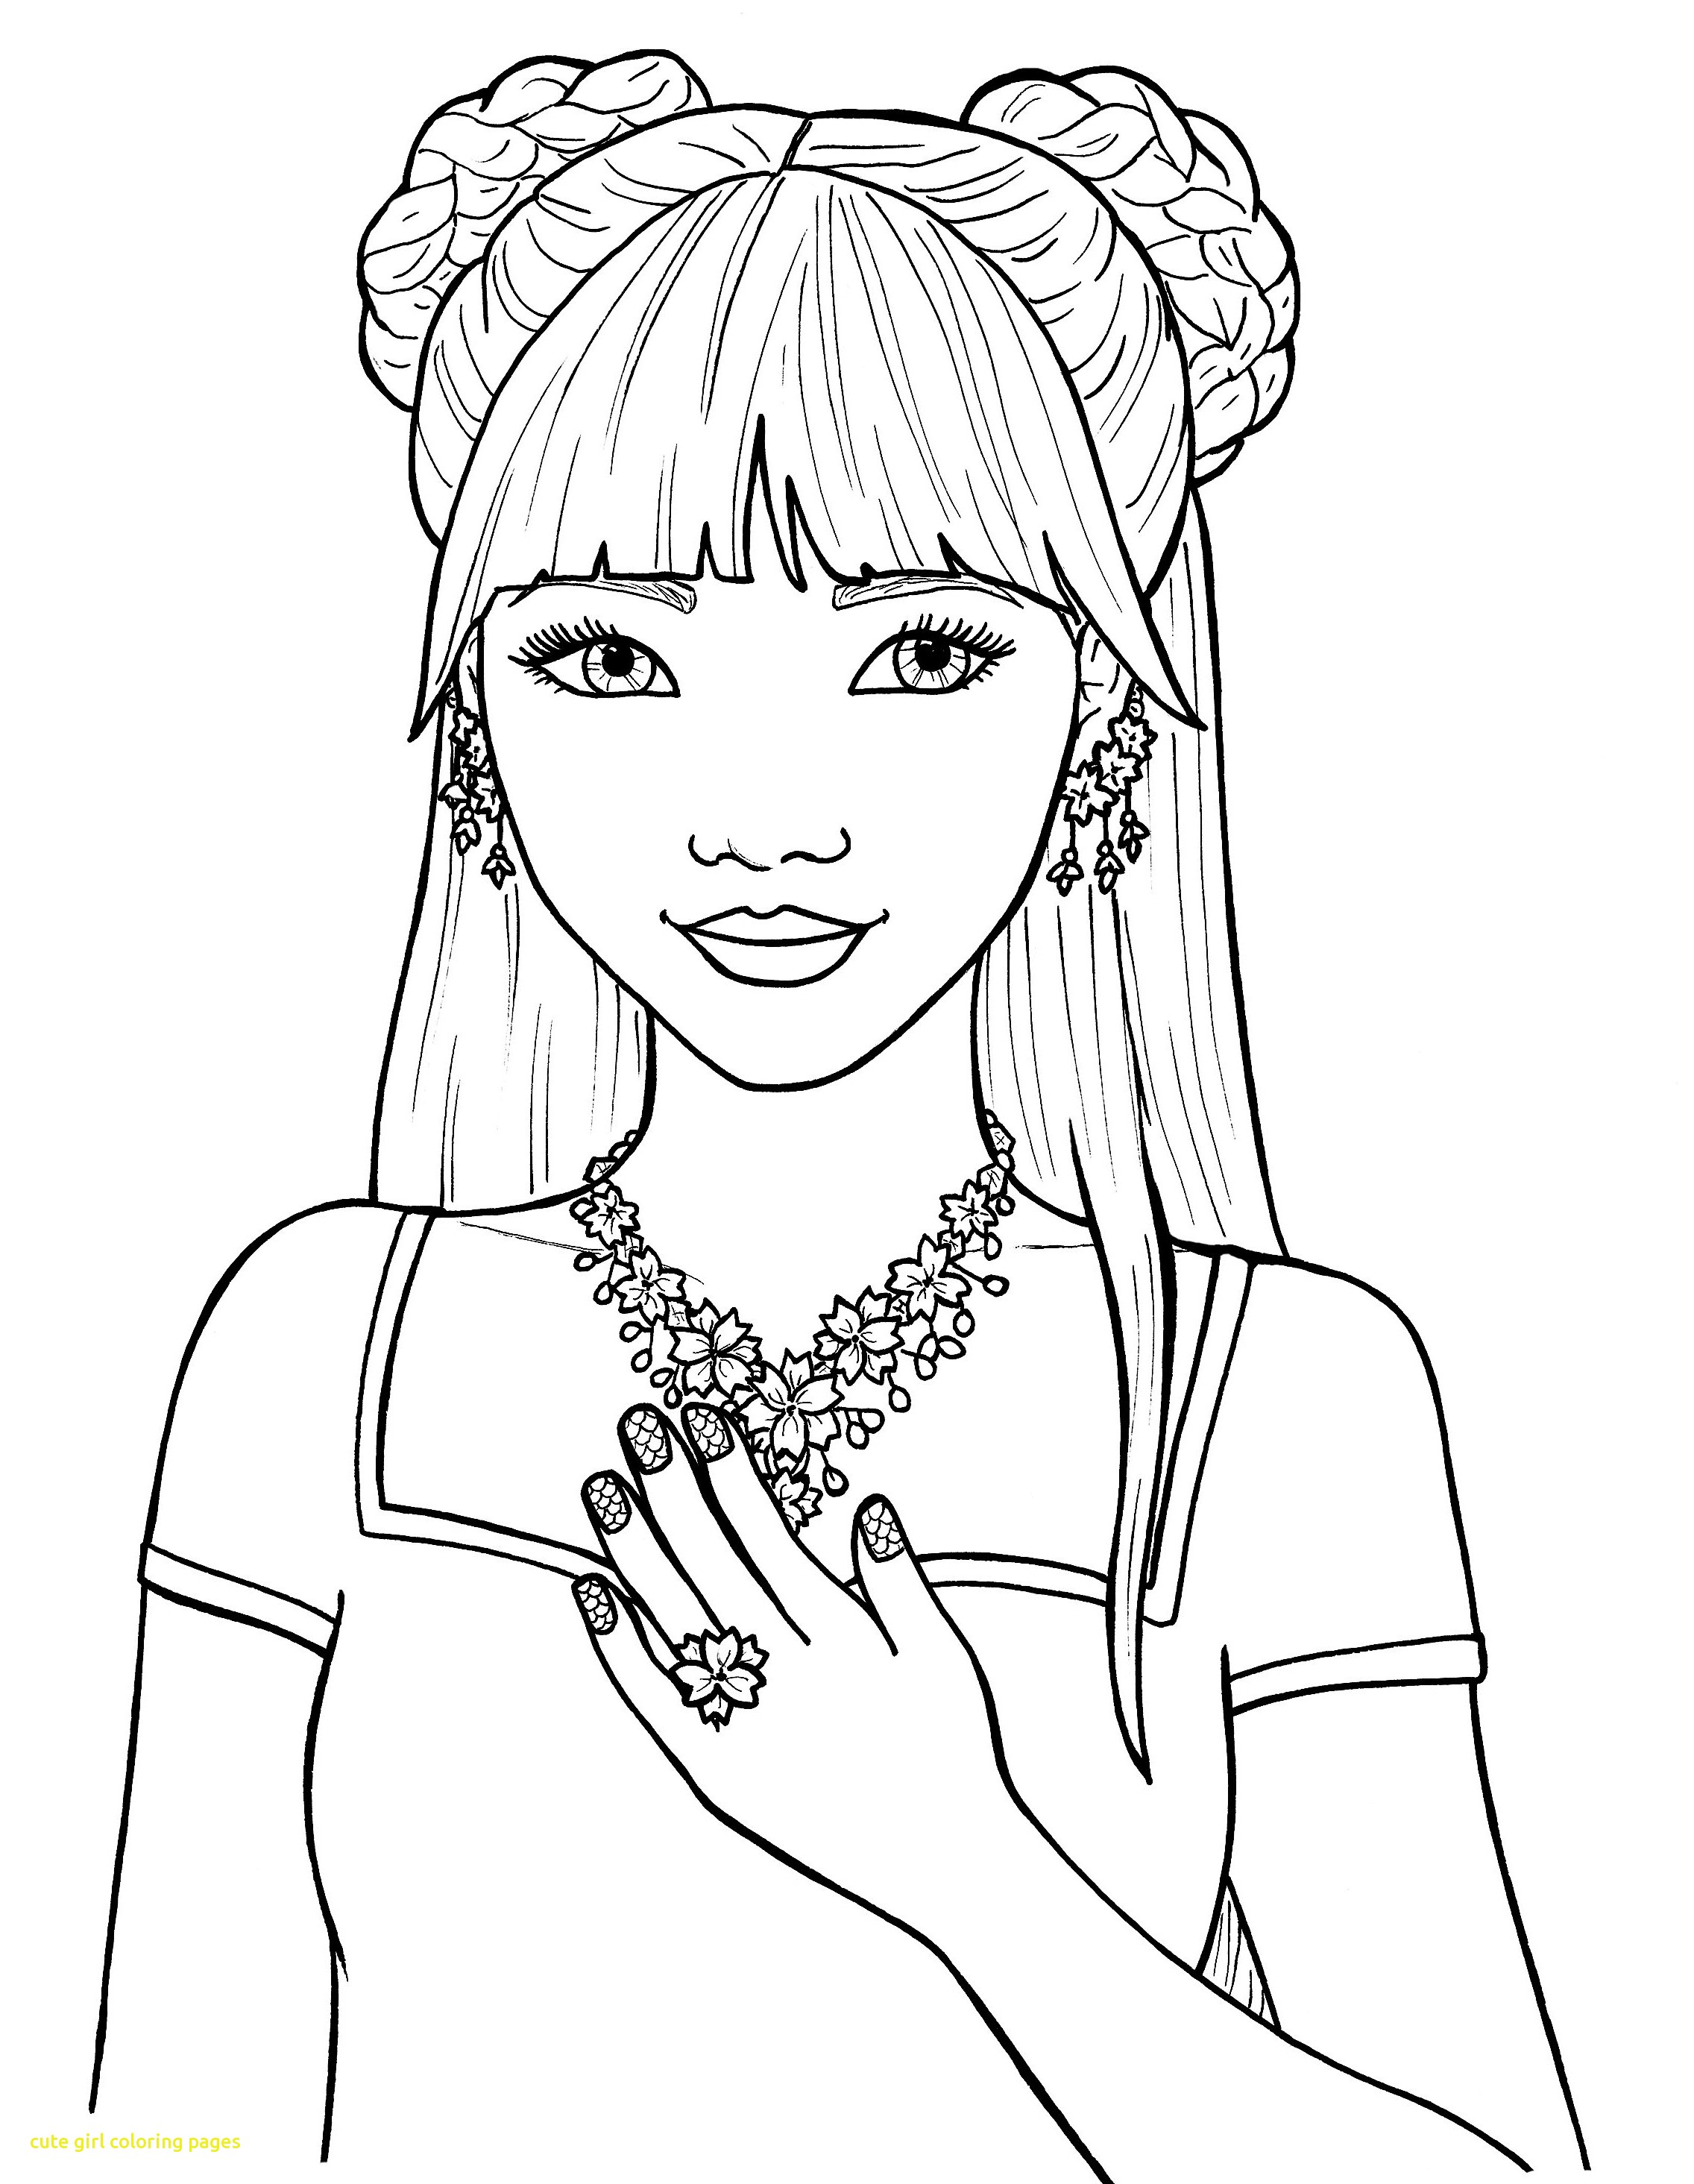 free printable pictures to color coloring pages for girls best coloring pages for kids free to printable color pictures